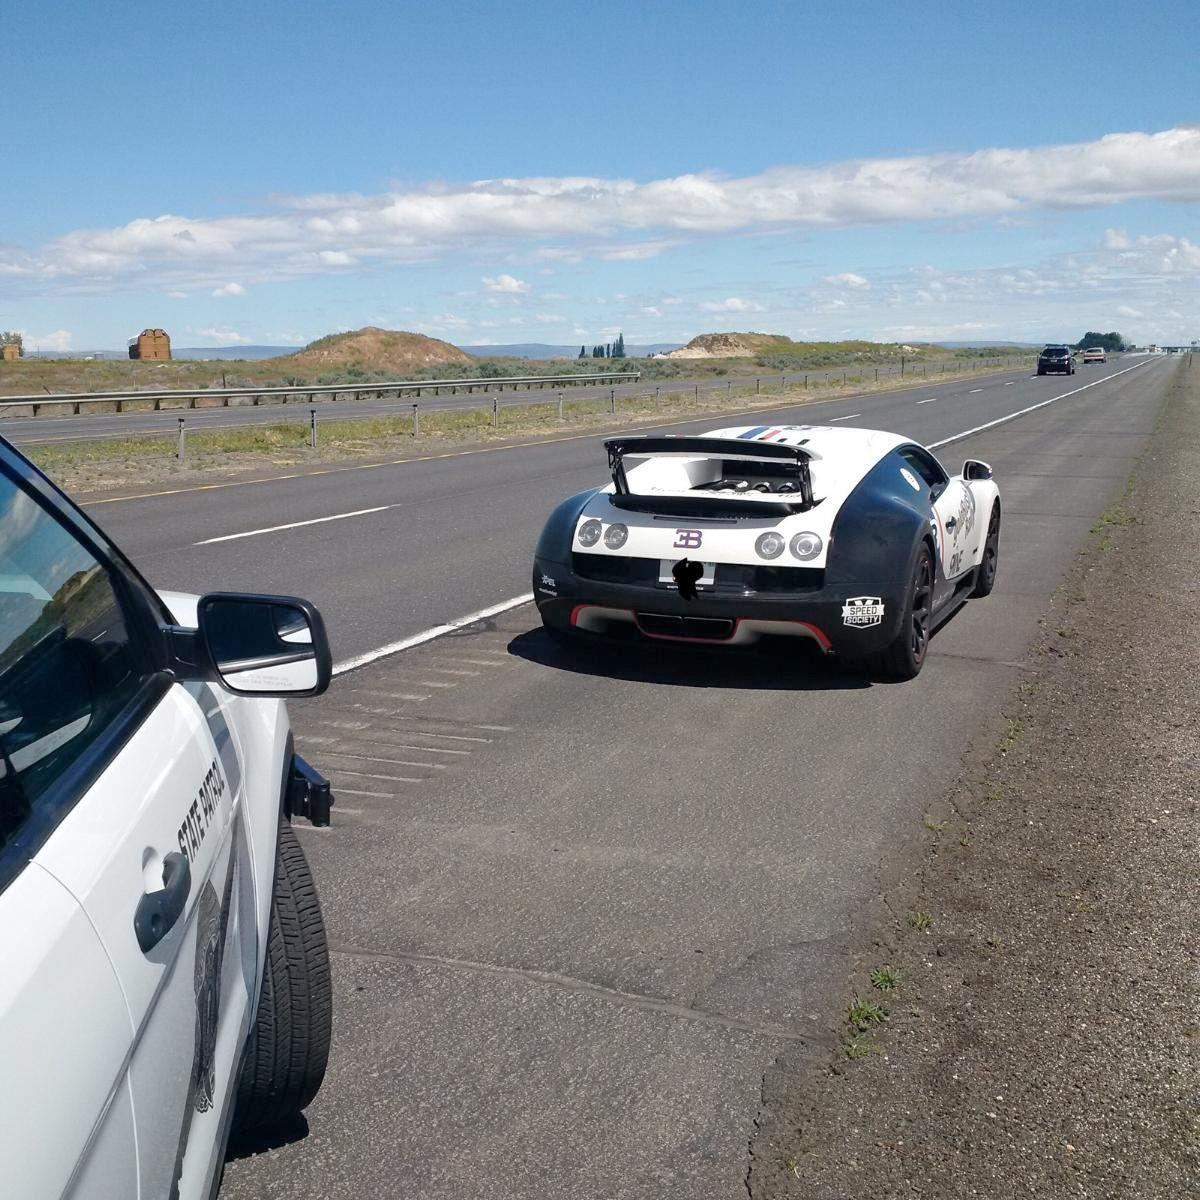 High Speed I 90 Run Ends With Lamborghini Impounded Driver Facing